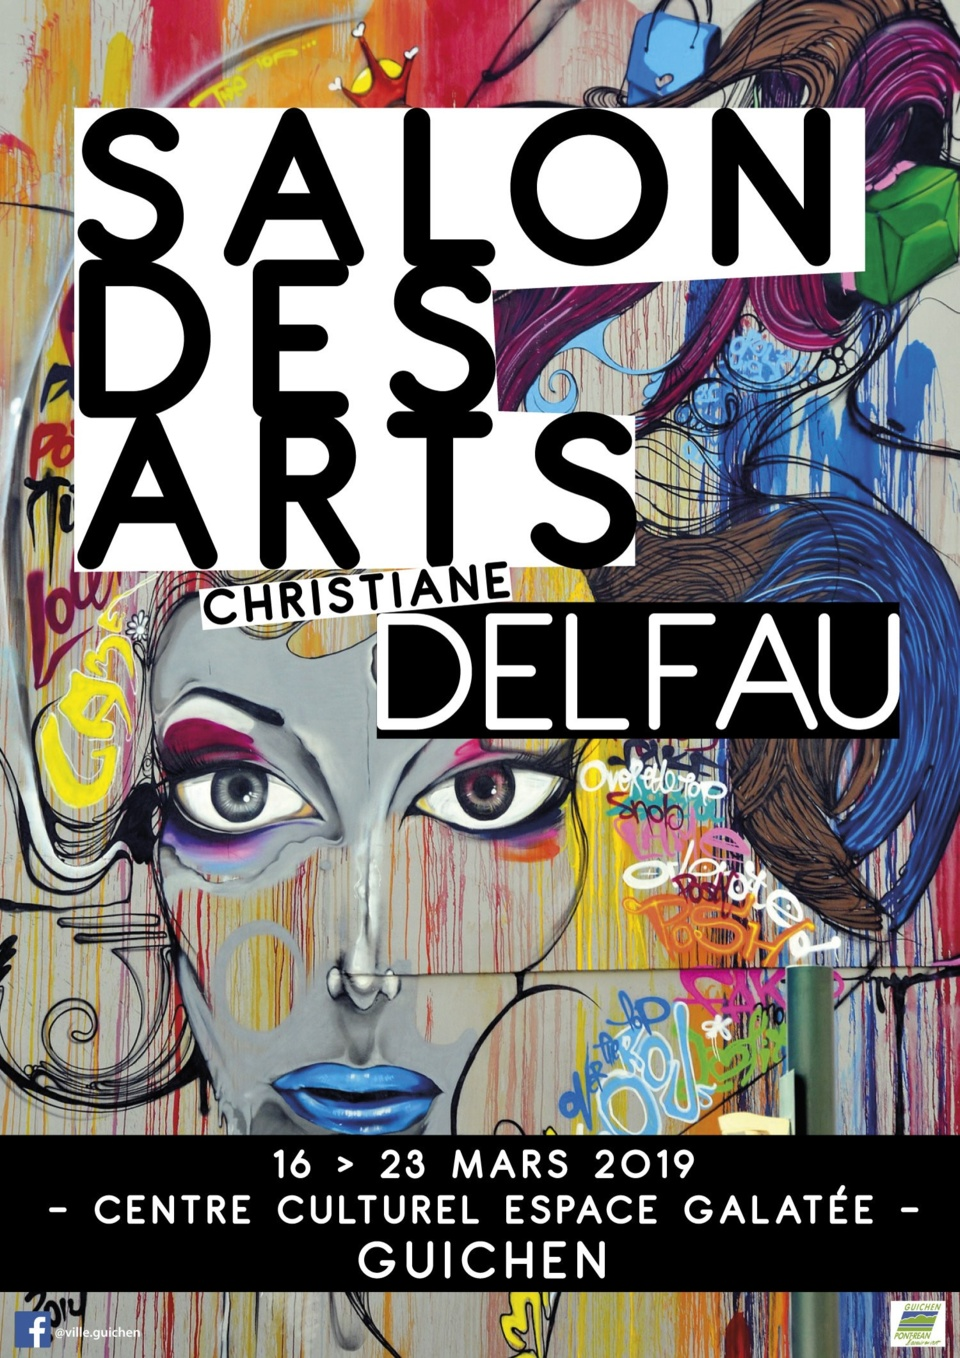 Salon des Arts Christiane Delfau